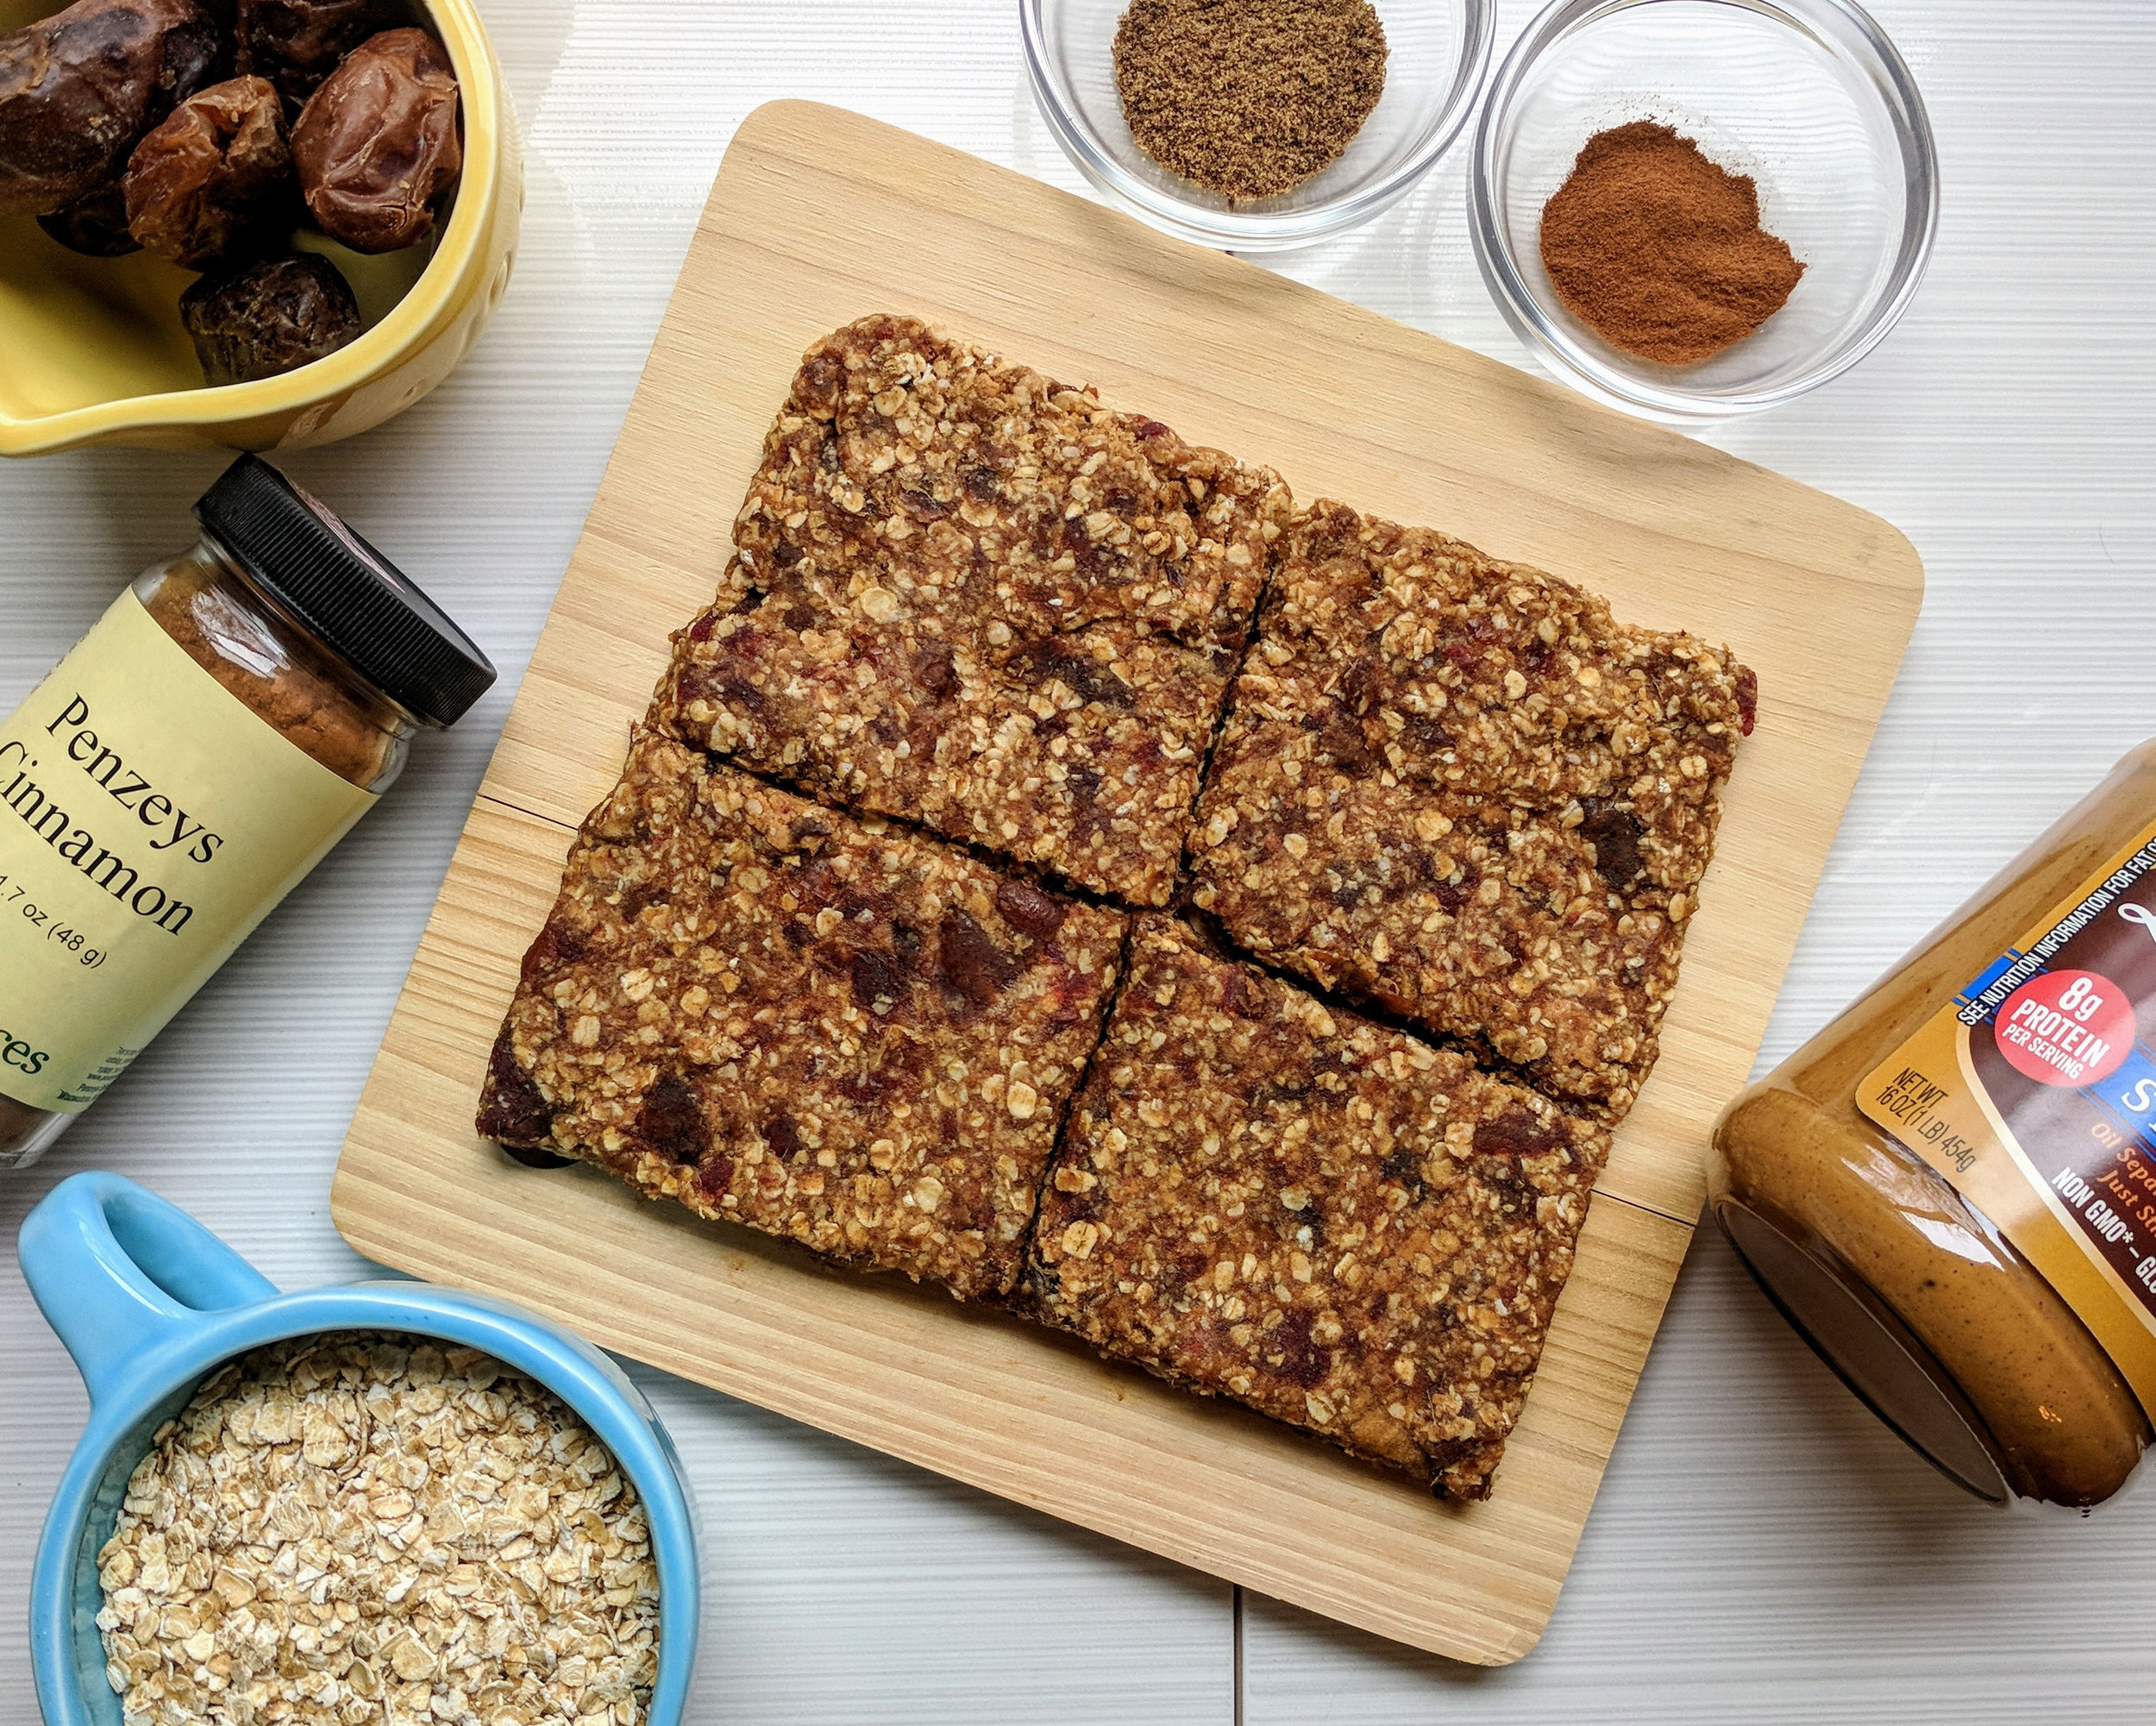 These no added sugar, no bake peanut butter date bars are packed with flavor and nutrients. The dates add a perfect boost of sweetness while adding fiber, potassium, calcium, and phosphorus.